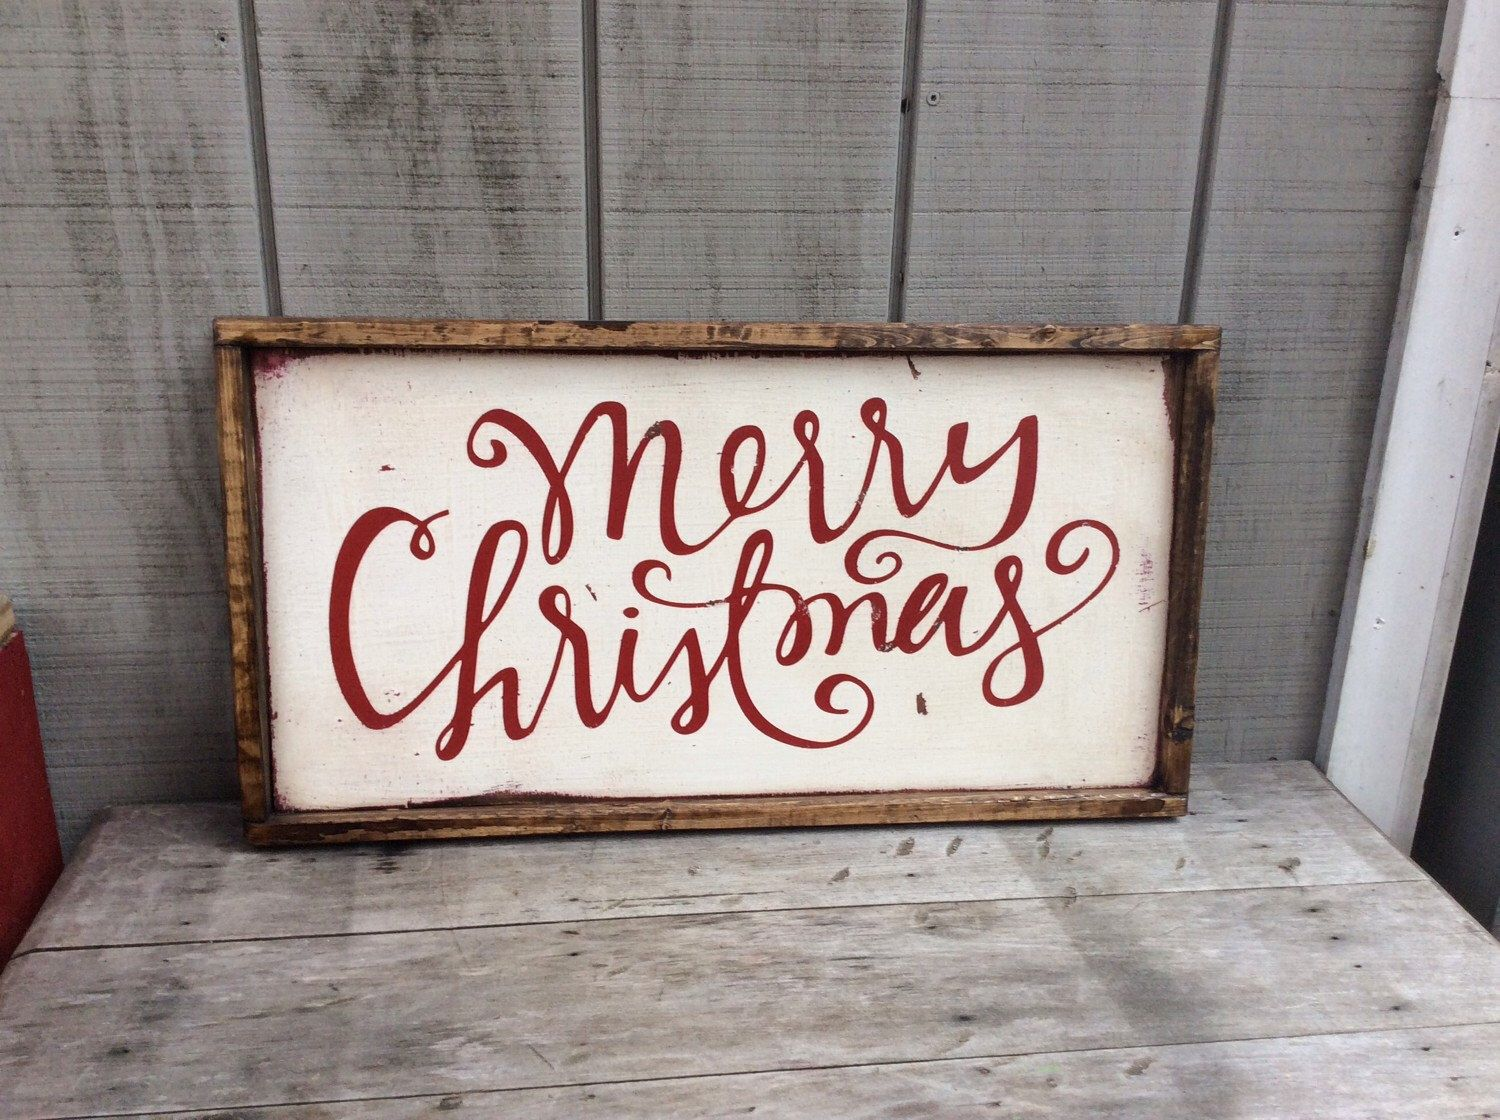 Merry Christmas Sign Rustic Wood By Sophisticatedhilbily On Etsy Https